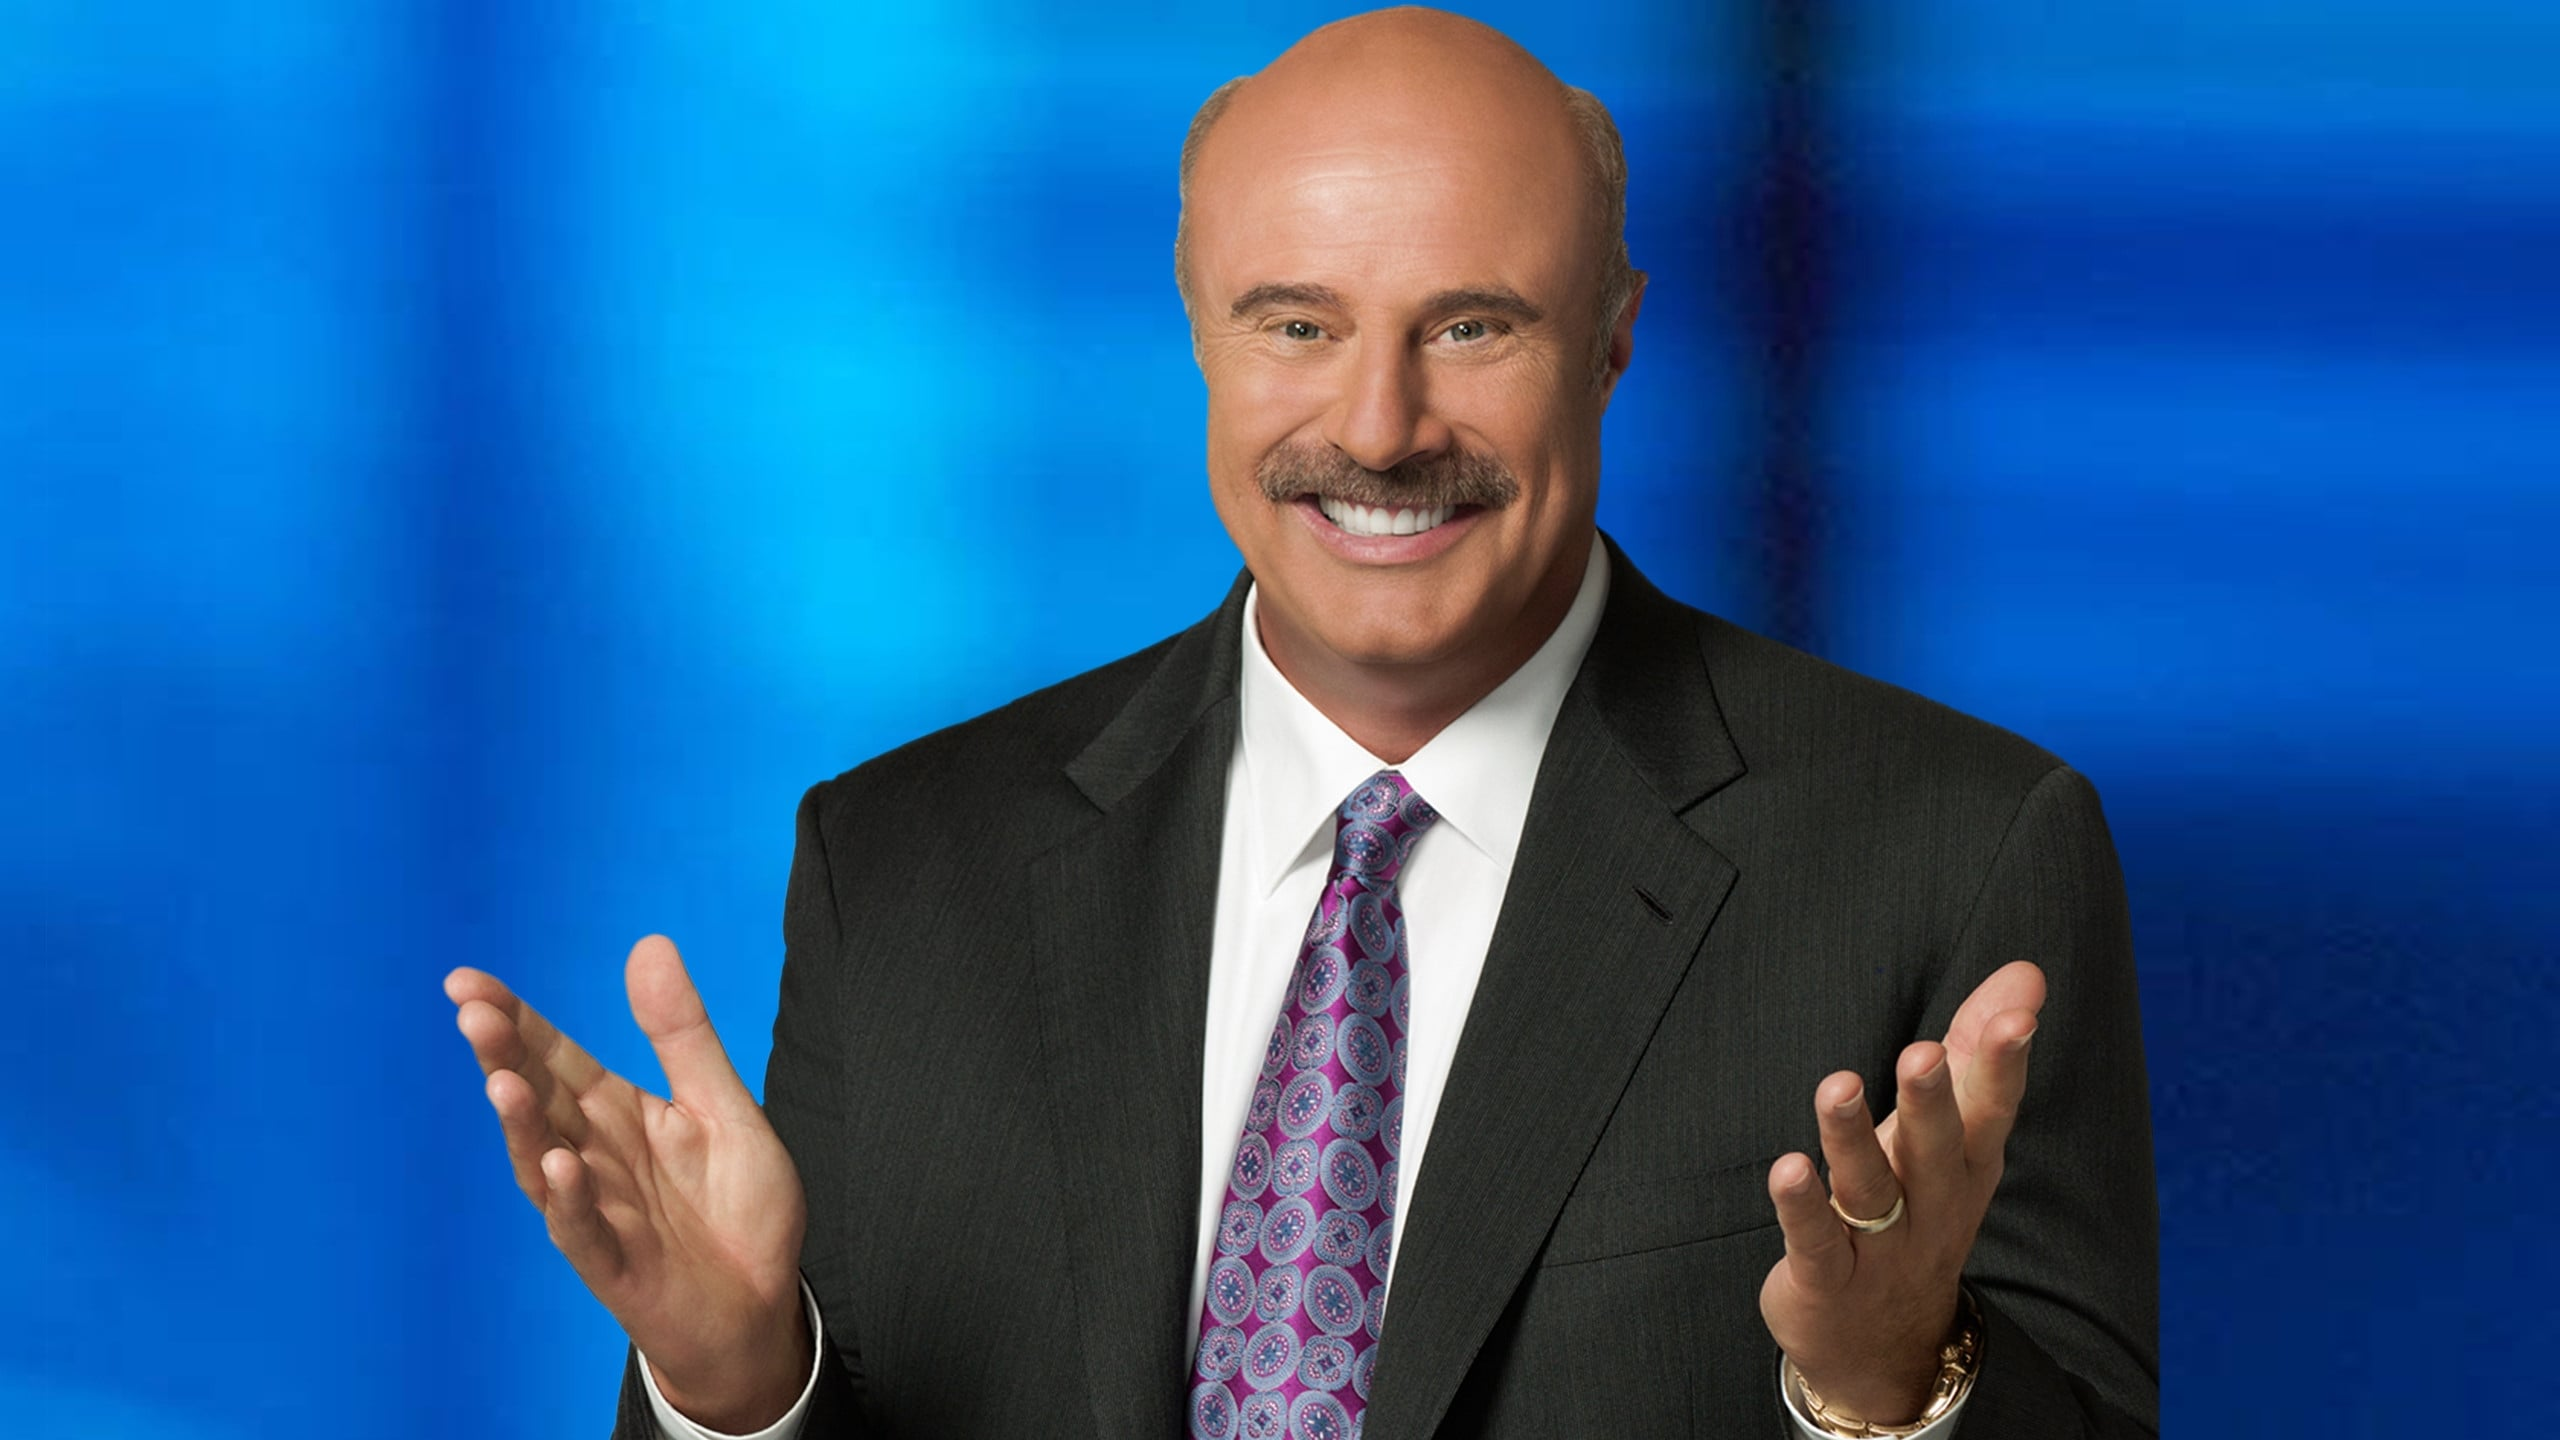 dr phil dating site Romance scam please report i did not see it but i am glad that dr phil gave romance scams the attention it deserves sadly scam free dating site.